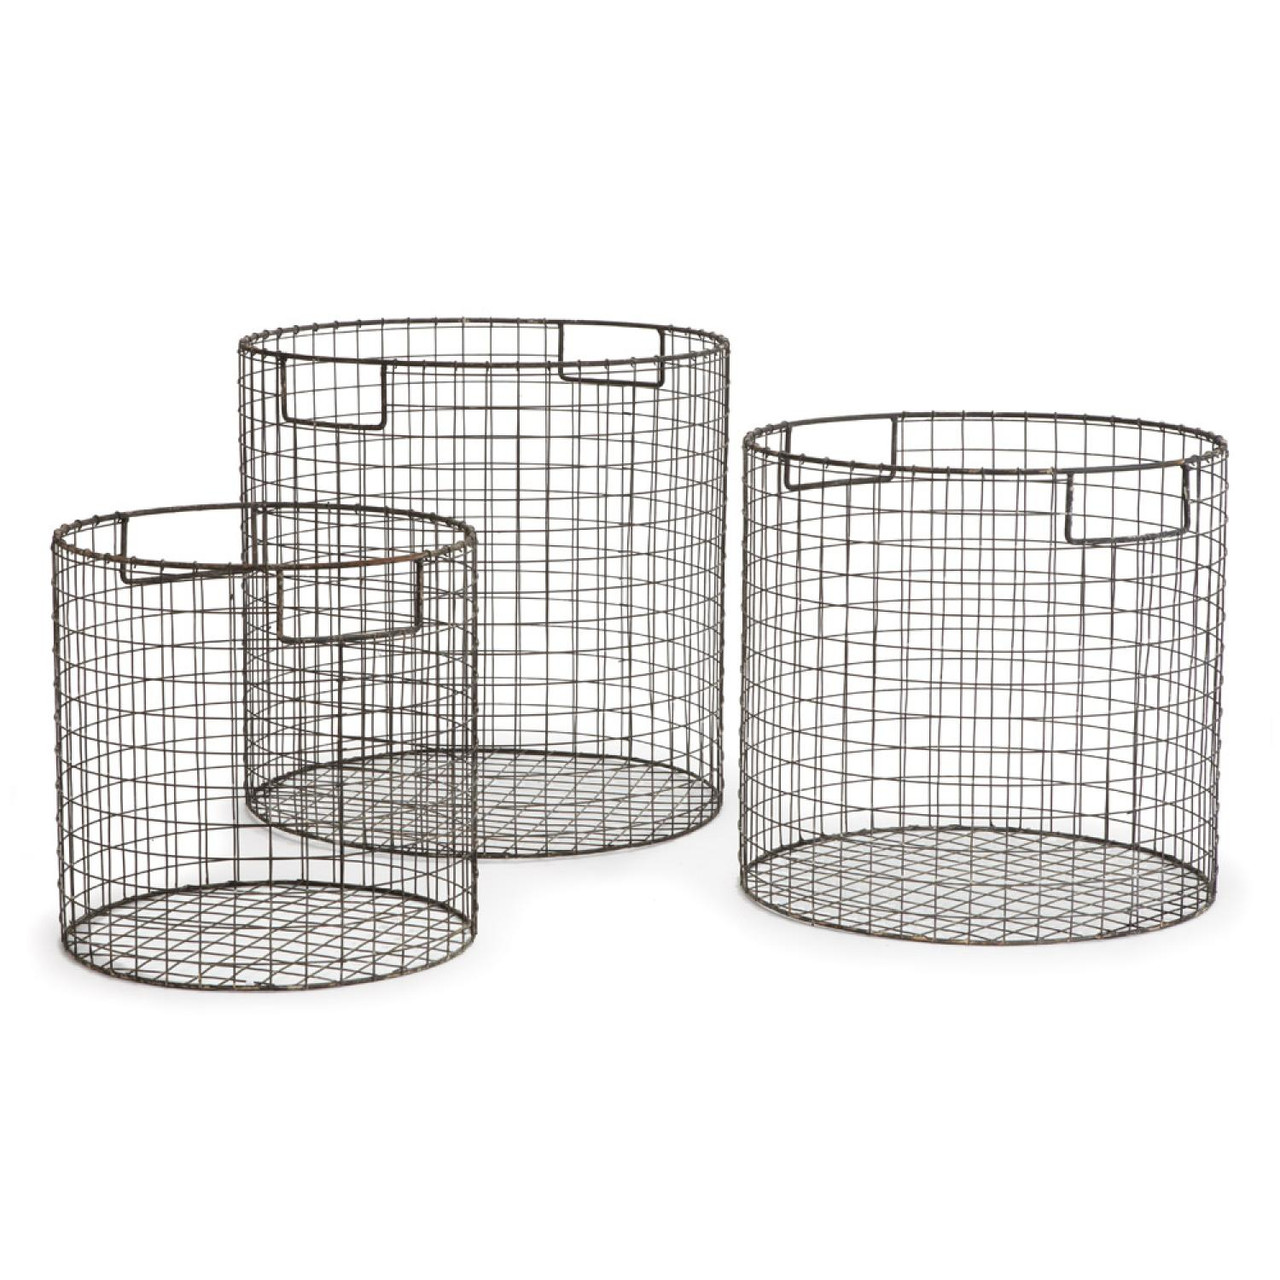 Set of 3 Matte Gray Finish Decorative Round Metal Wire Baskets ...